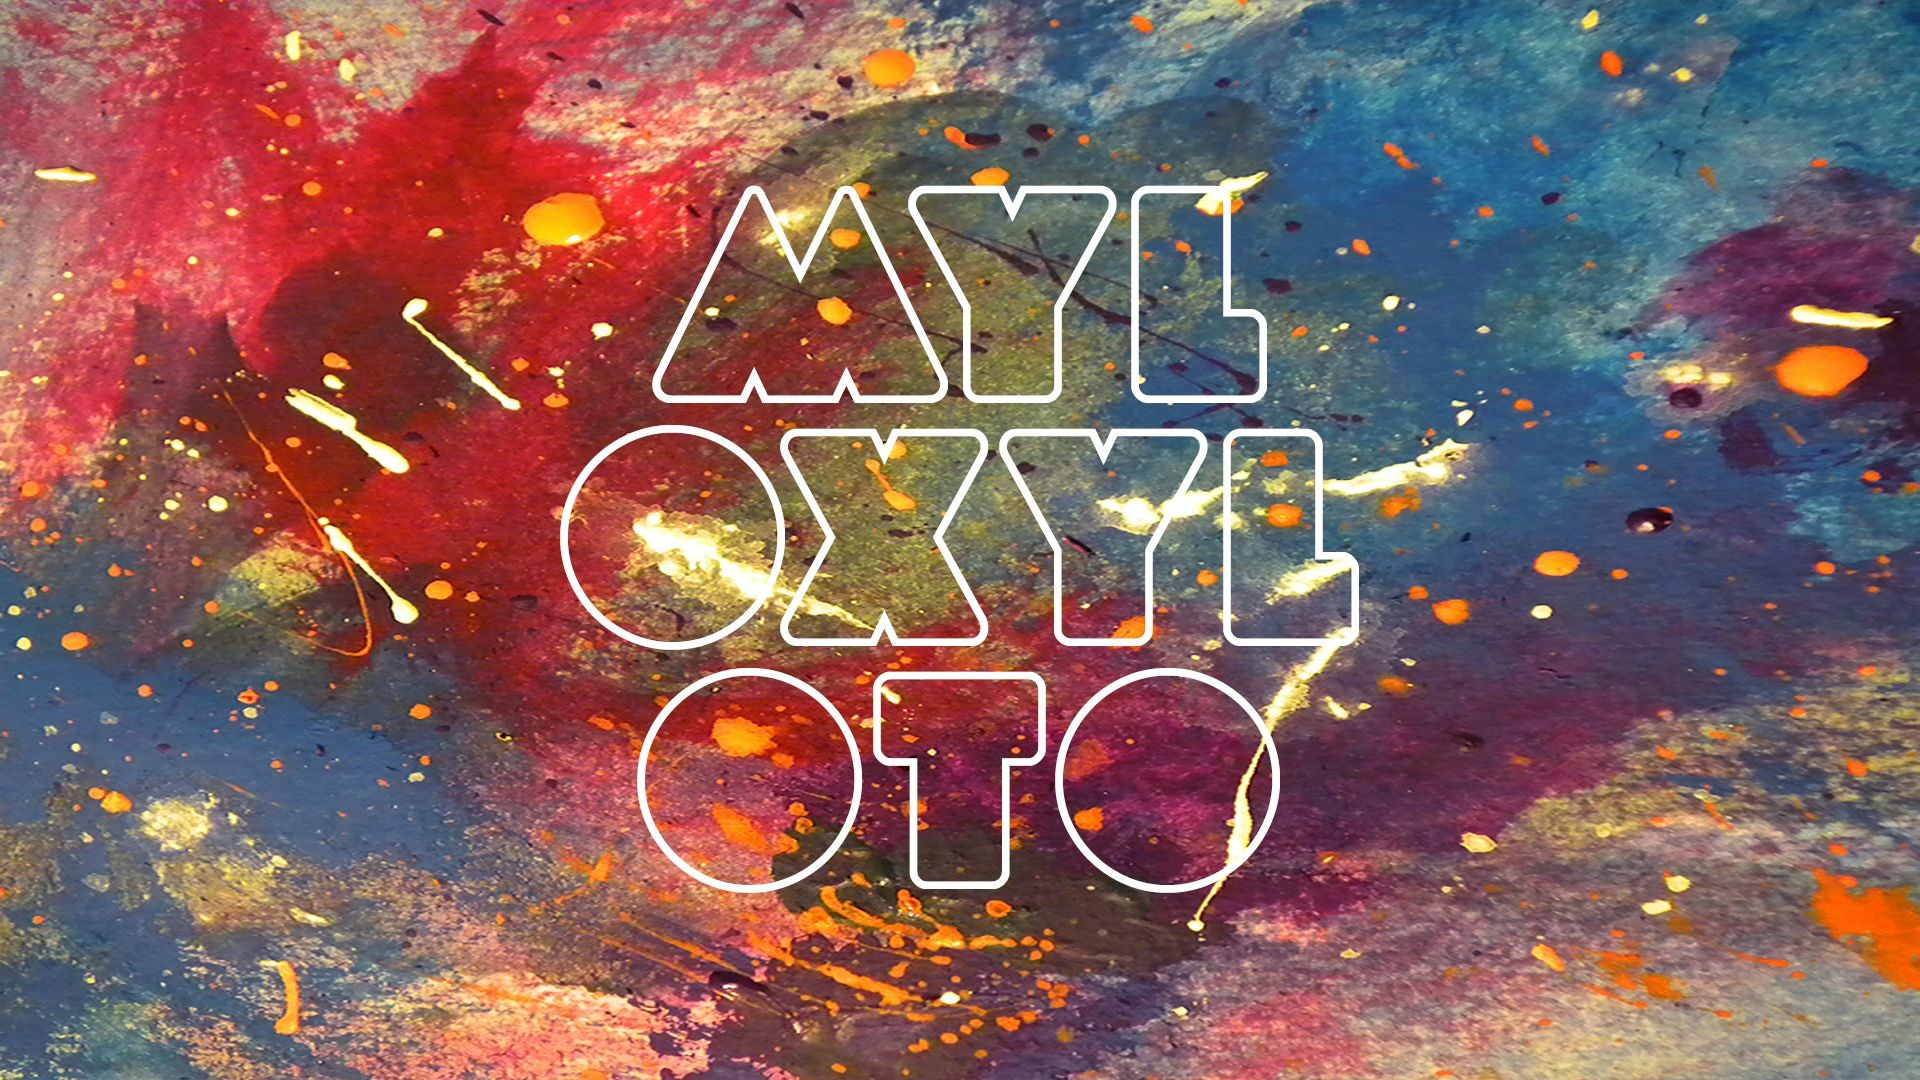 Mylo Xyloto Wallpaper Hd Wallpapertag